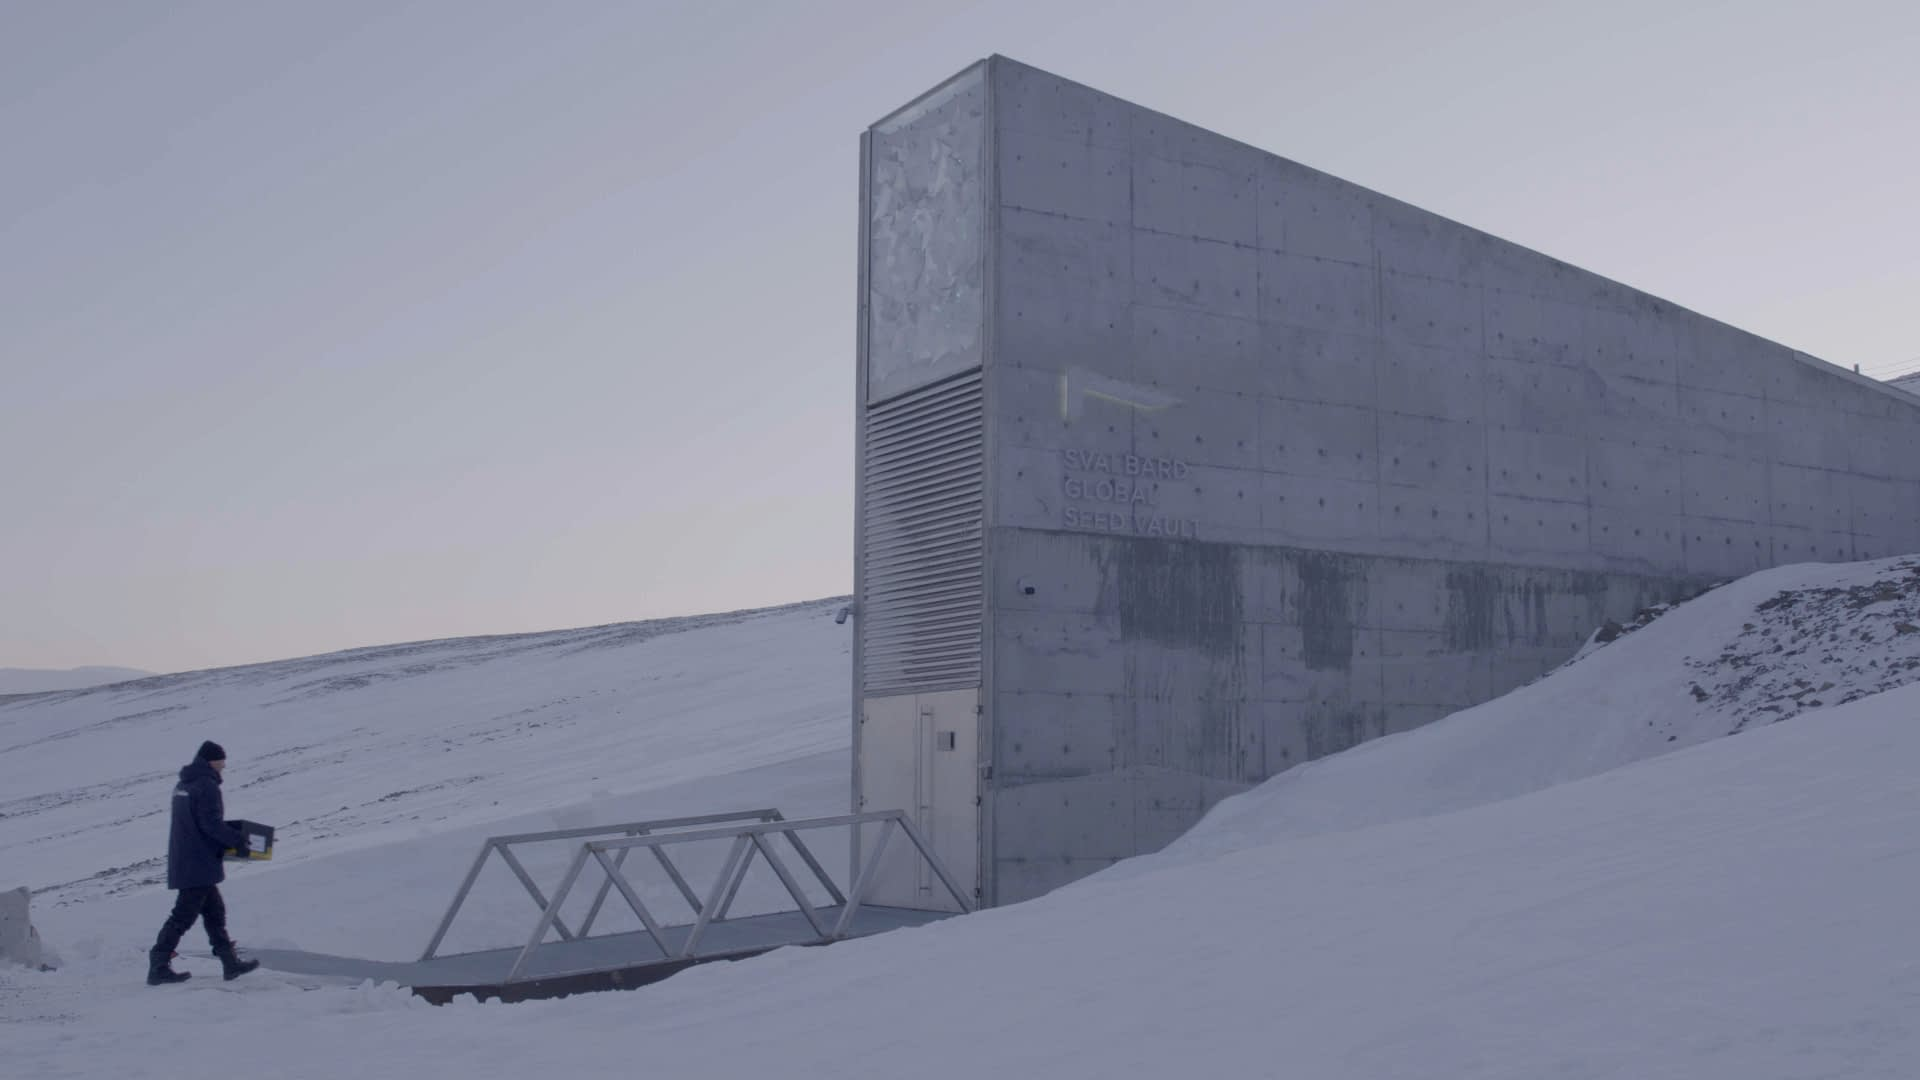 A NordGen staff member brings a box of seed into the Global Seed Vault in Svalbard, Norway. (Photo: Thomas Sonne/Common Ground Media for NordGen)